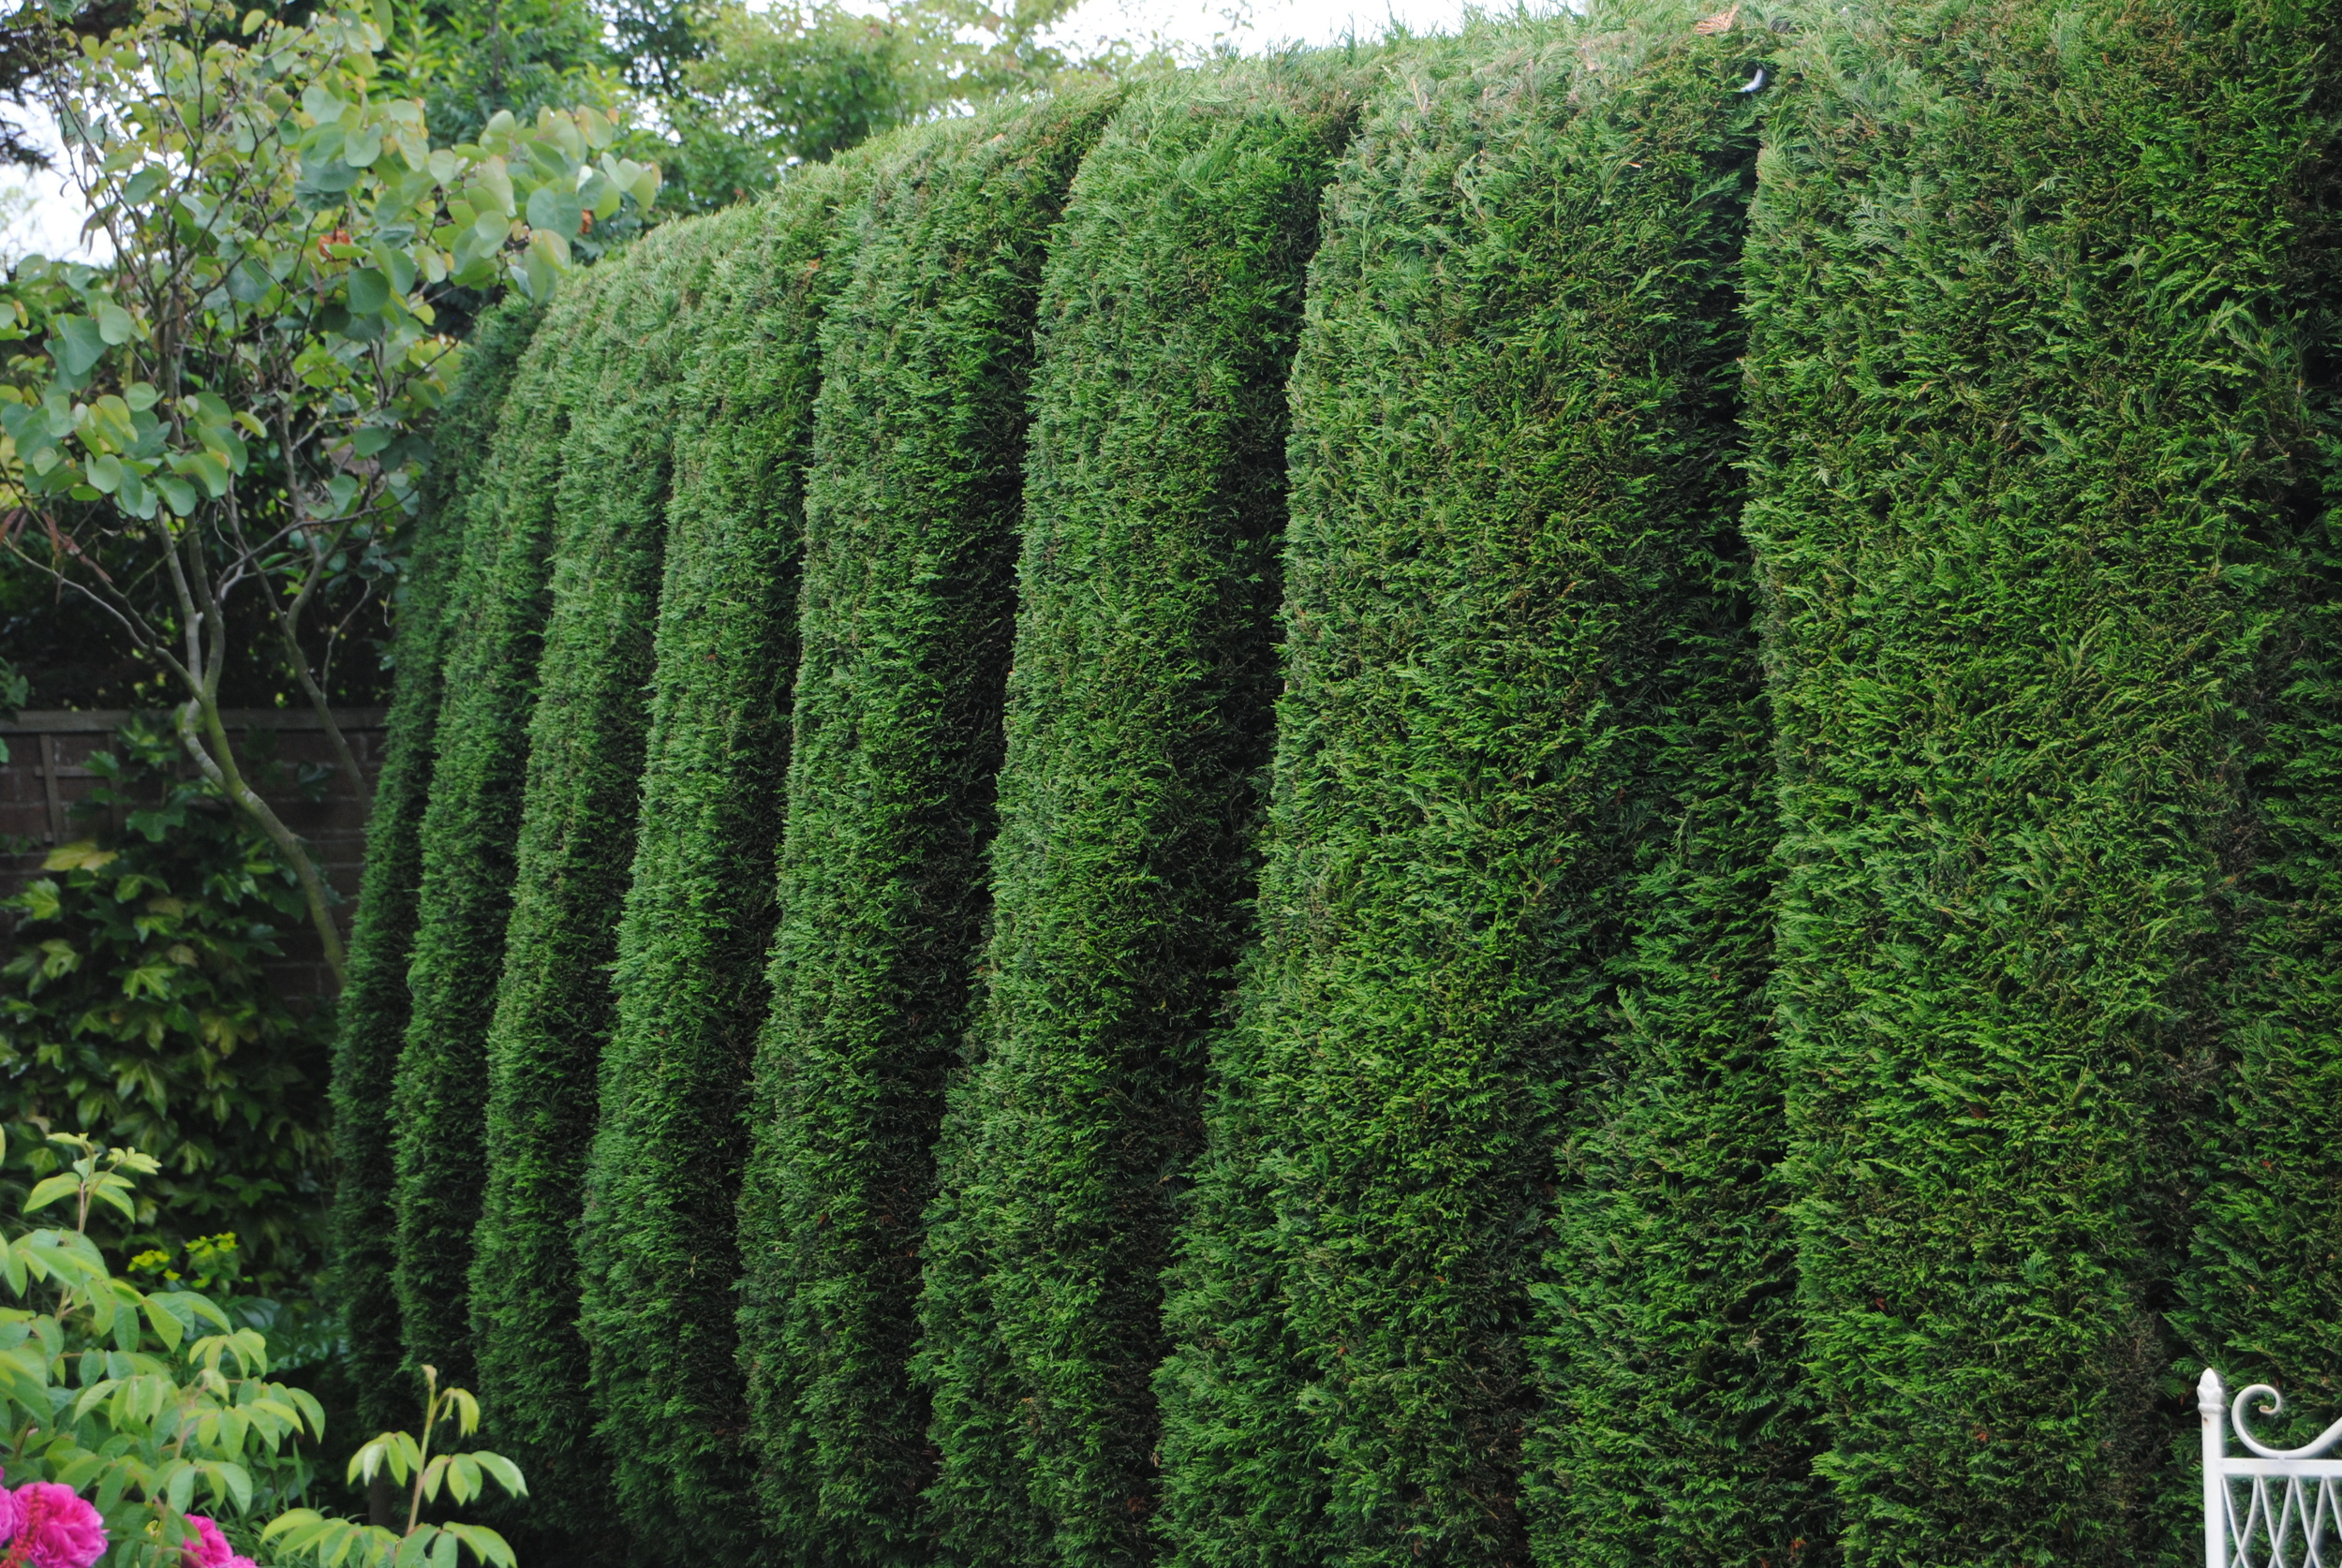 Even the hedges are delightful.